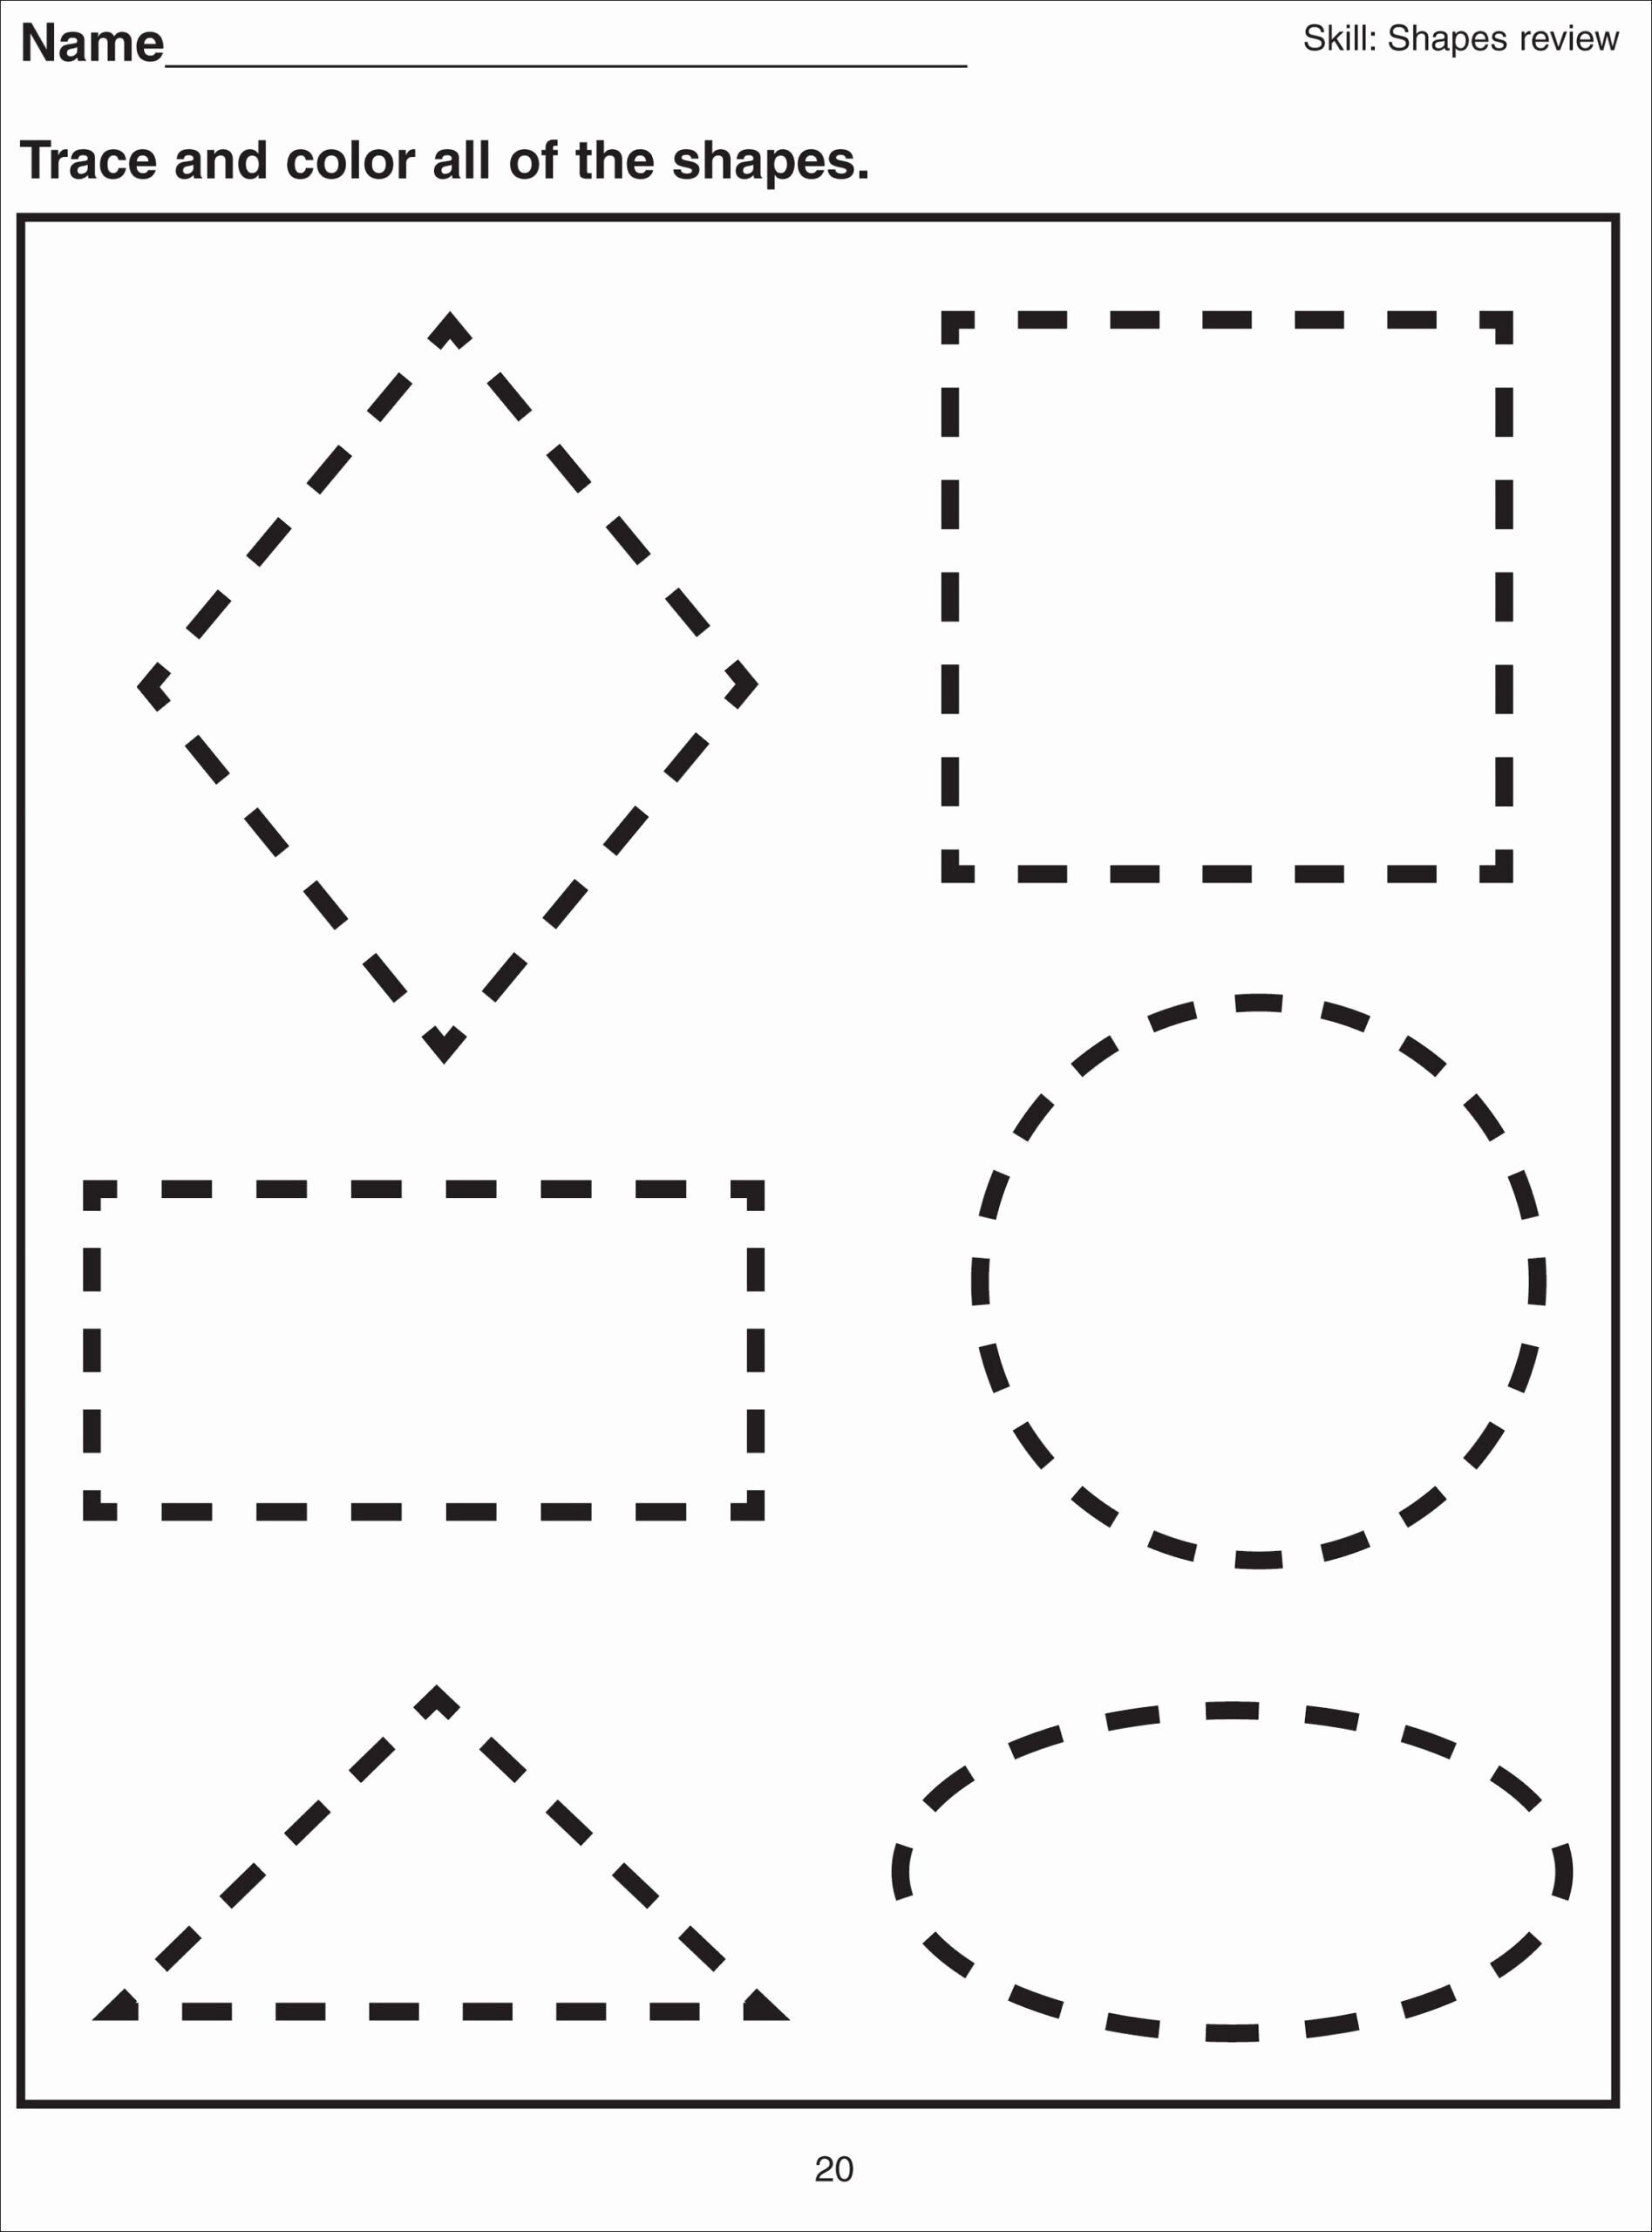 Shapes Tracing Worksheets for Preschoolers Printable Shape Tracing Worksheets for Print Free Multiplication Table